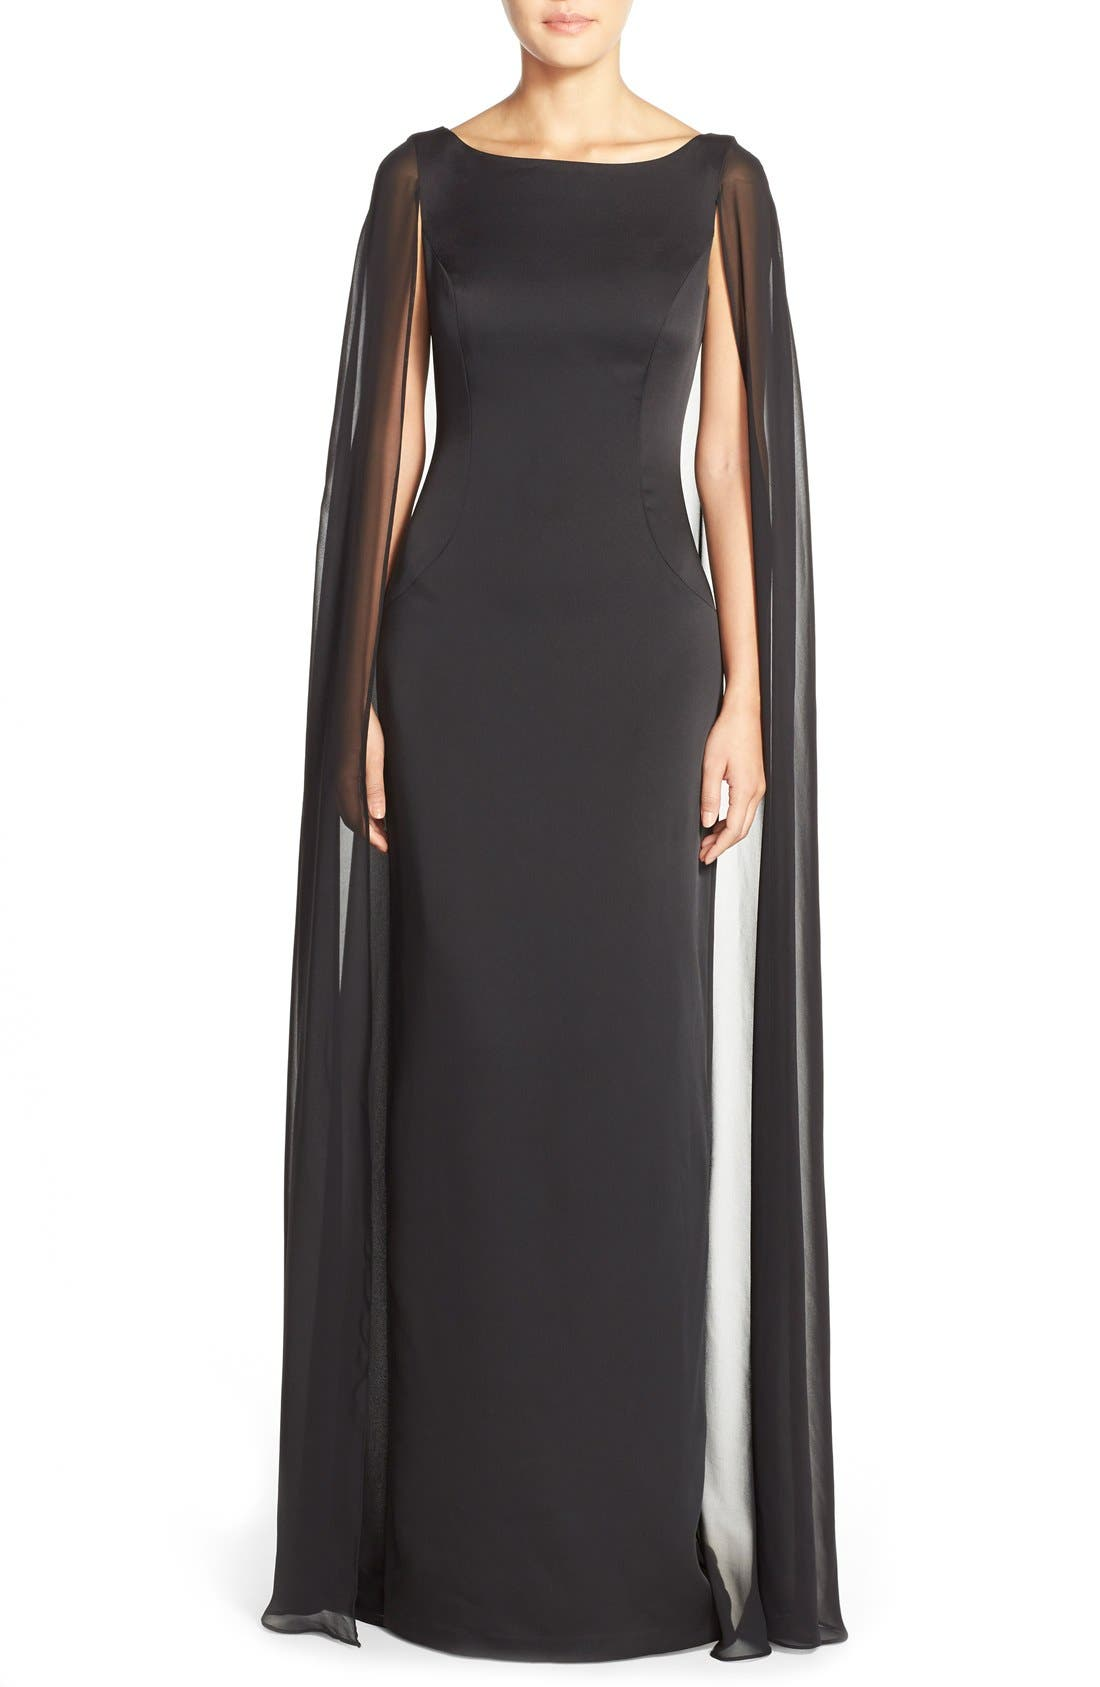 Alternate Image 1 Selected - Adrianna PapellSatin Column Gown withChiffon Cape